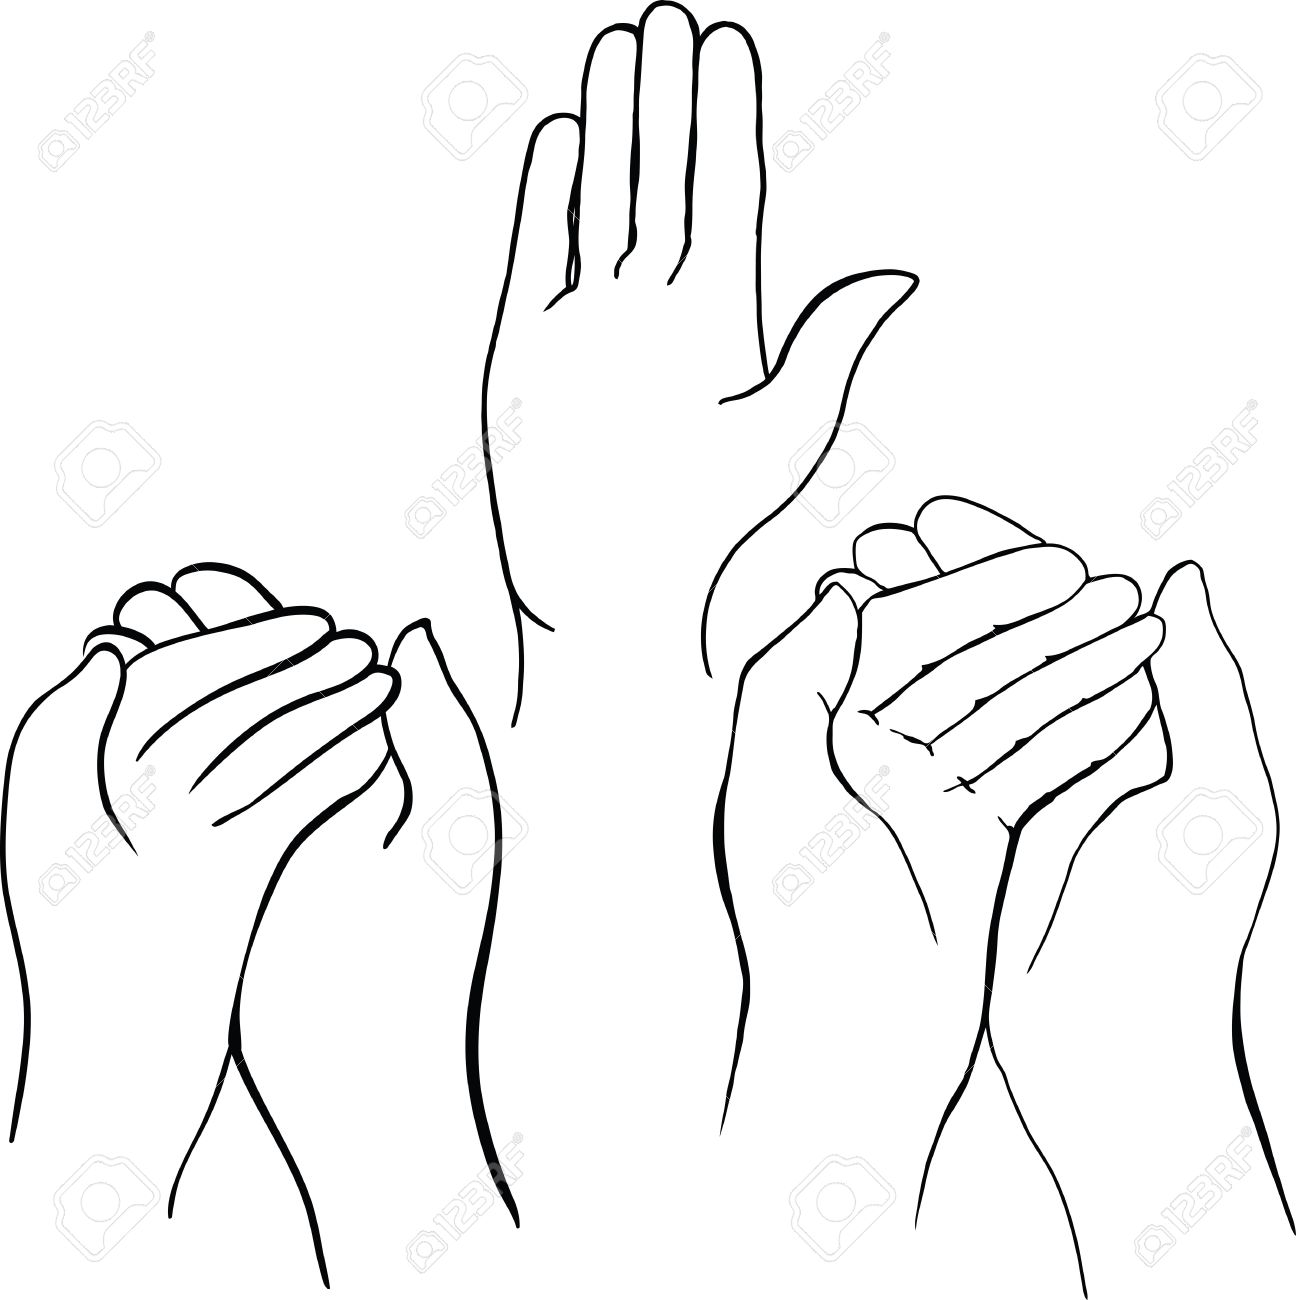 1296x1300 Drawing Of Hands Holding Something Royalty Free Cliparts, Vectors